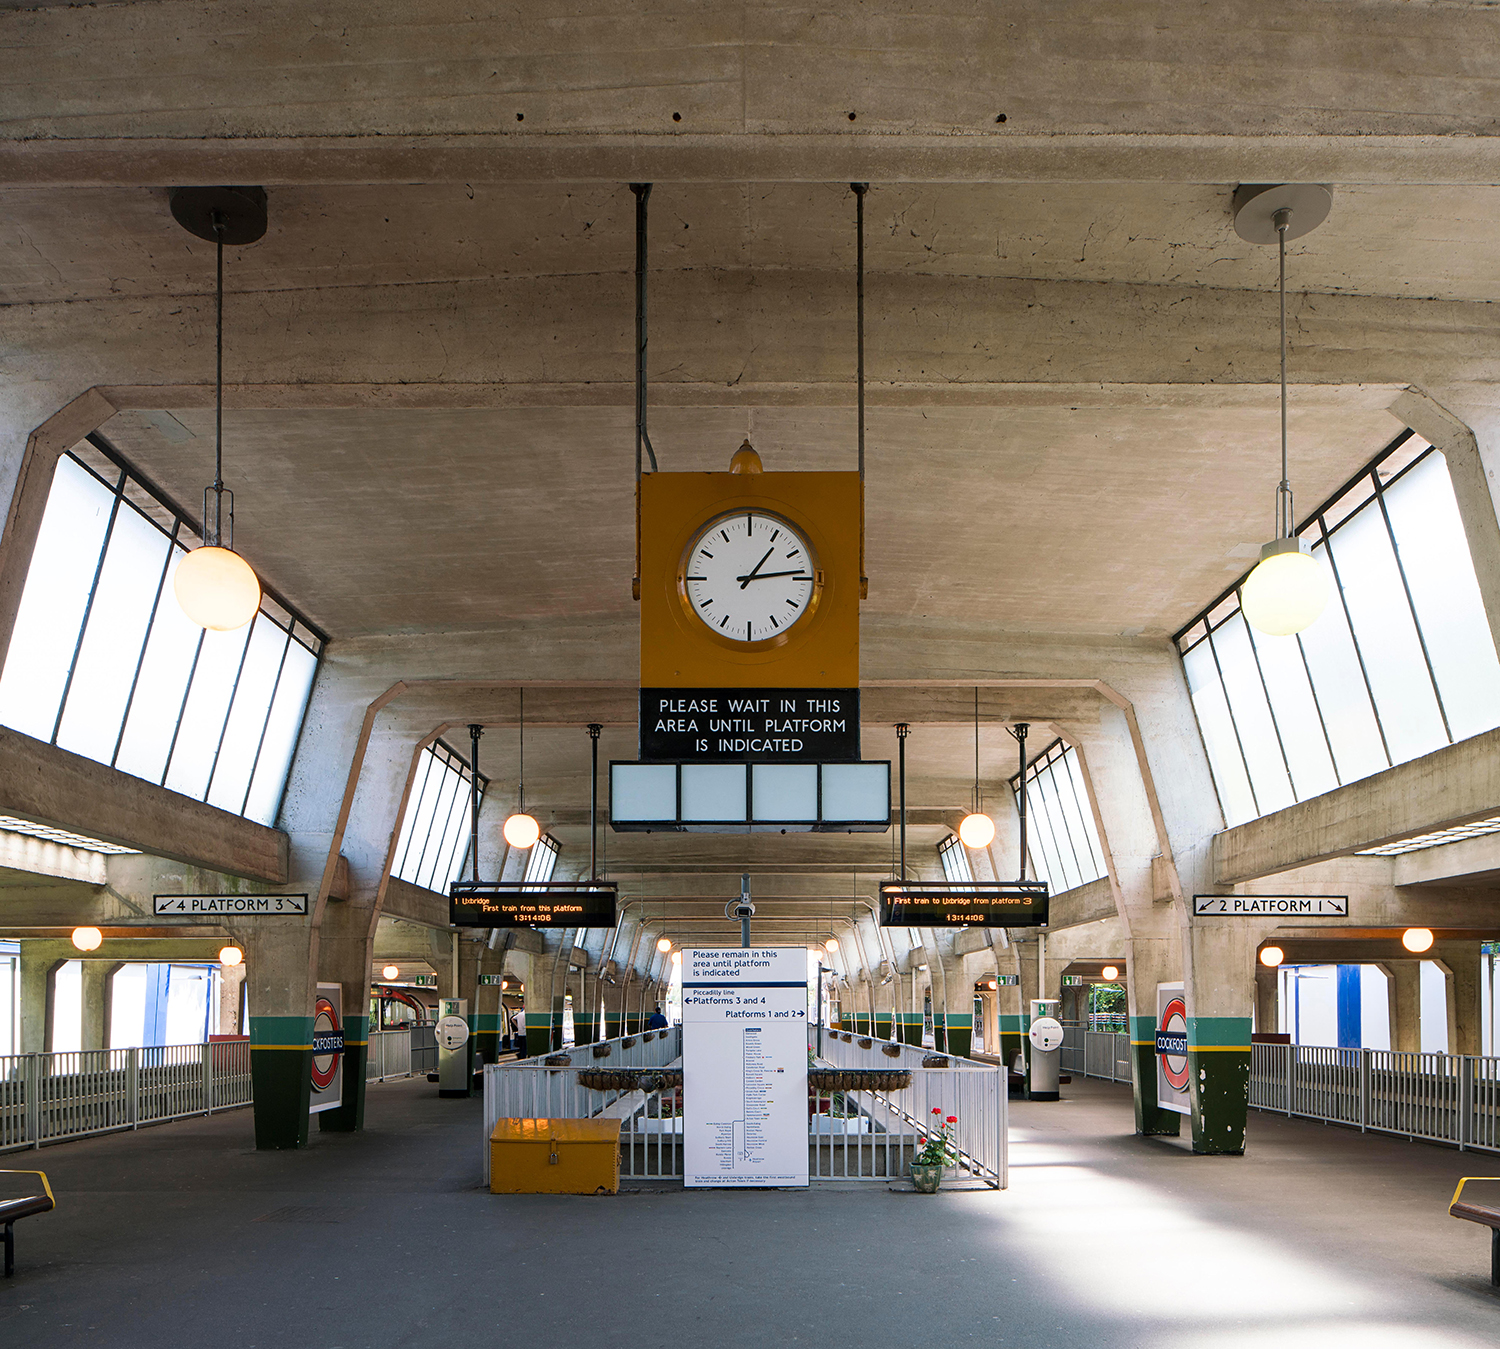 COCKFOSTERS STATION / ARCHITECTURE OF THE UNDERGROUND